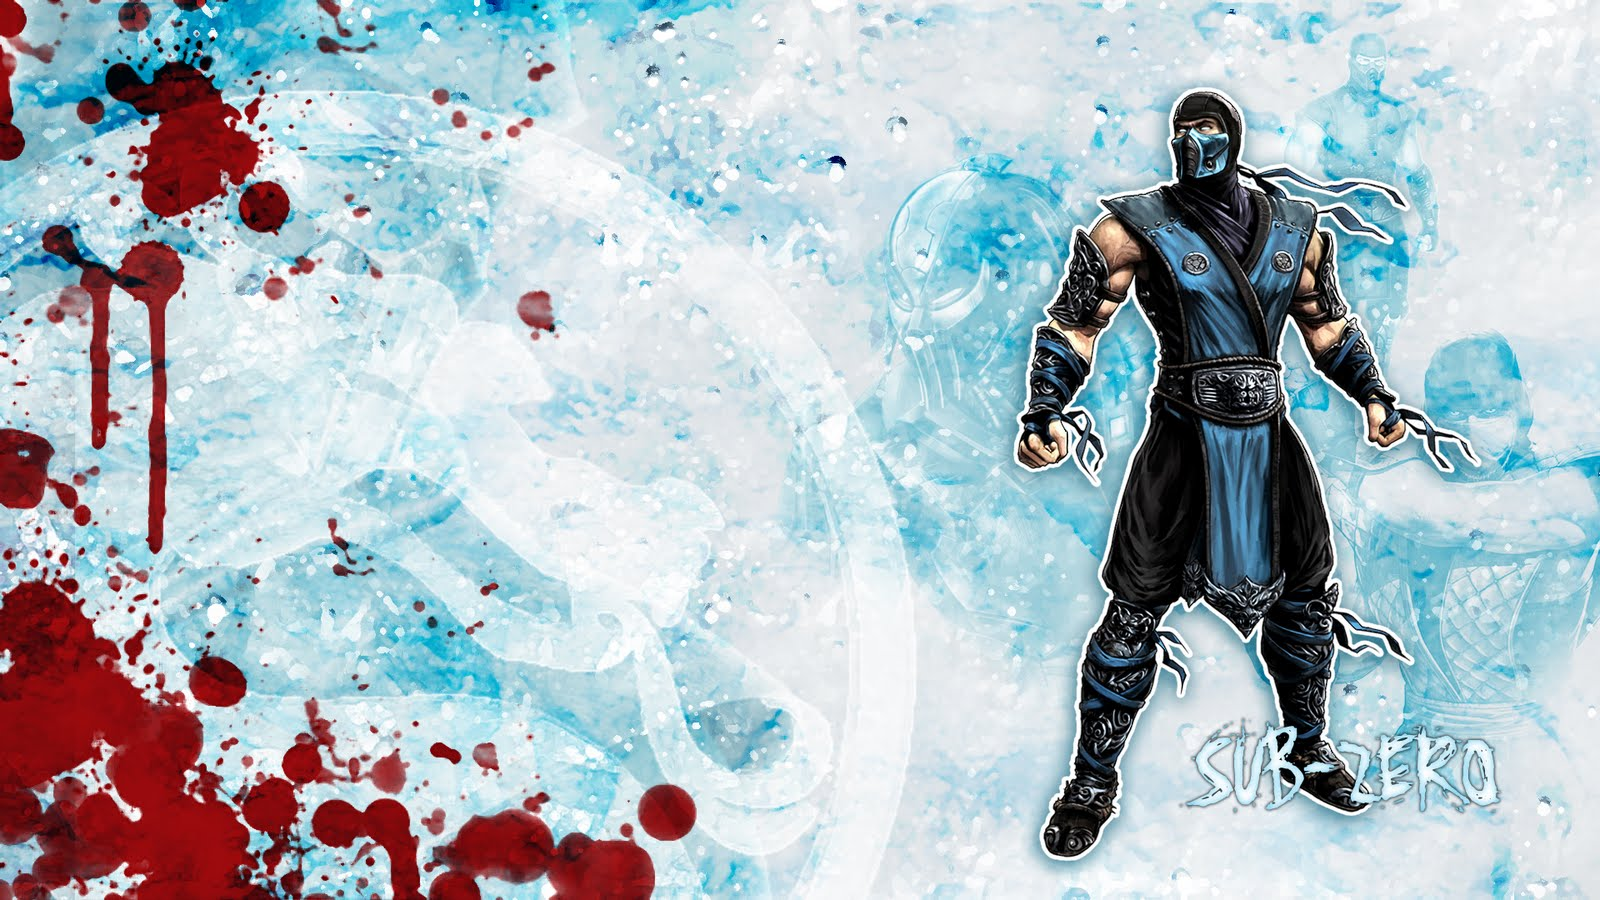 Mortal kombat HD & Widescreen Wallpaper 0.550187300523175